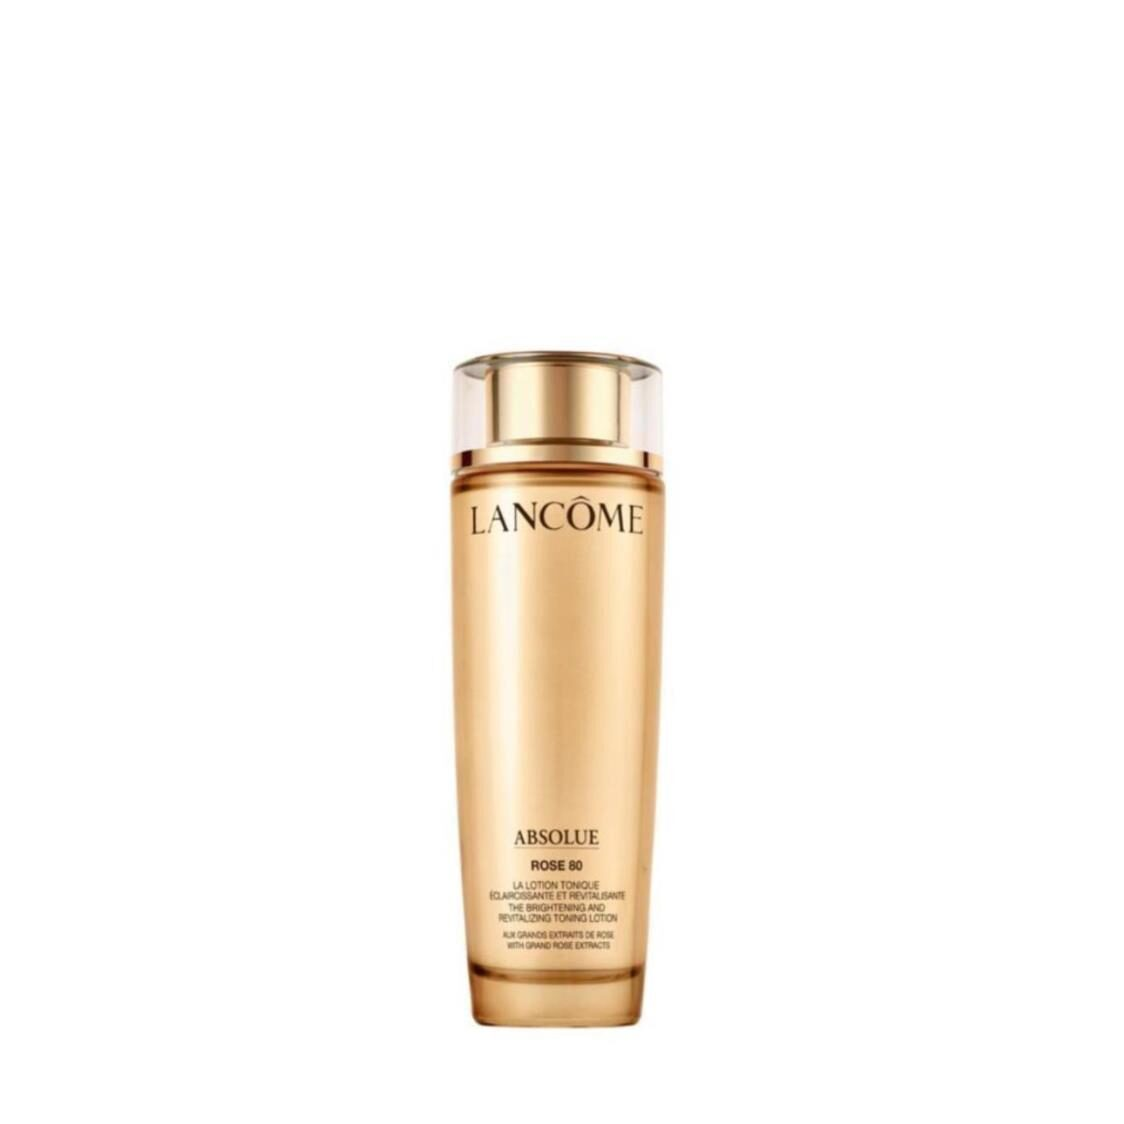 Lancome Absolue Rose 80 Lotion 150ml